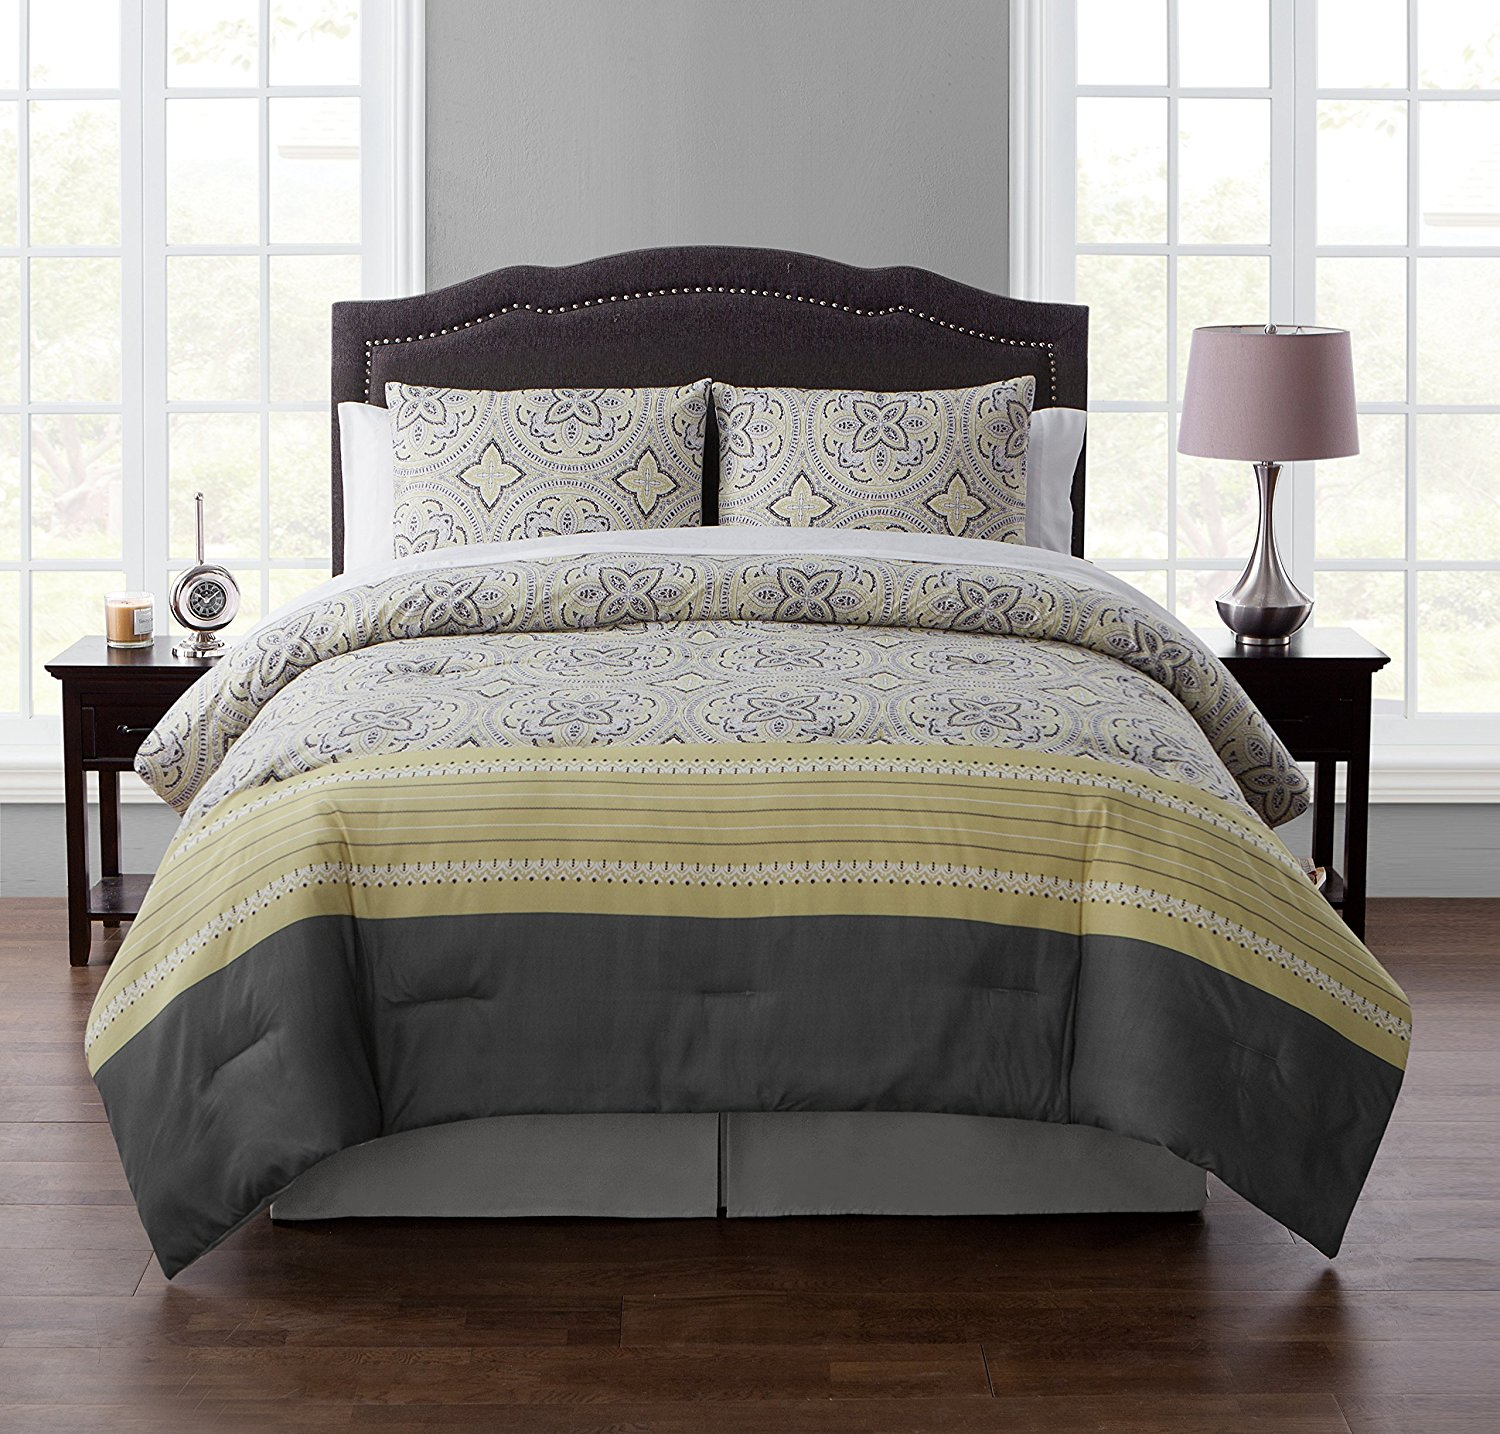 King BED-in-a-BAG Set : Boho Chic Medallion Design , Luxurious Microfiber in Yellow ; Complete Set Includes Reversible Comforter , Pillow Shams , Sheet Set: Fitted, Flat & Pillowcase , Bedskirt